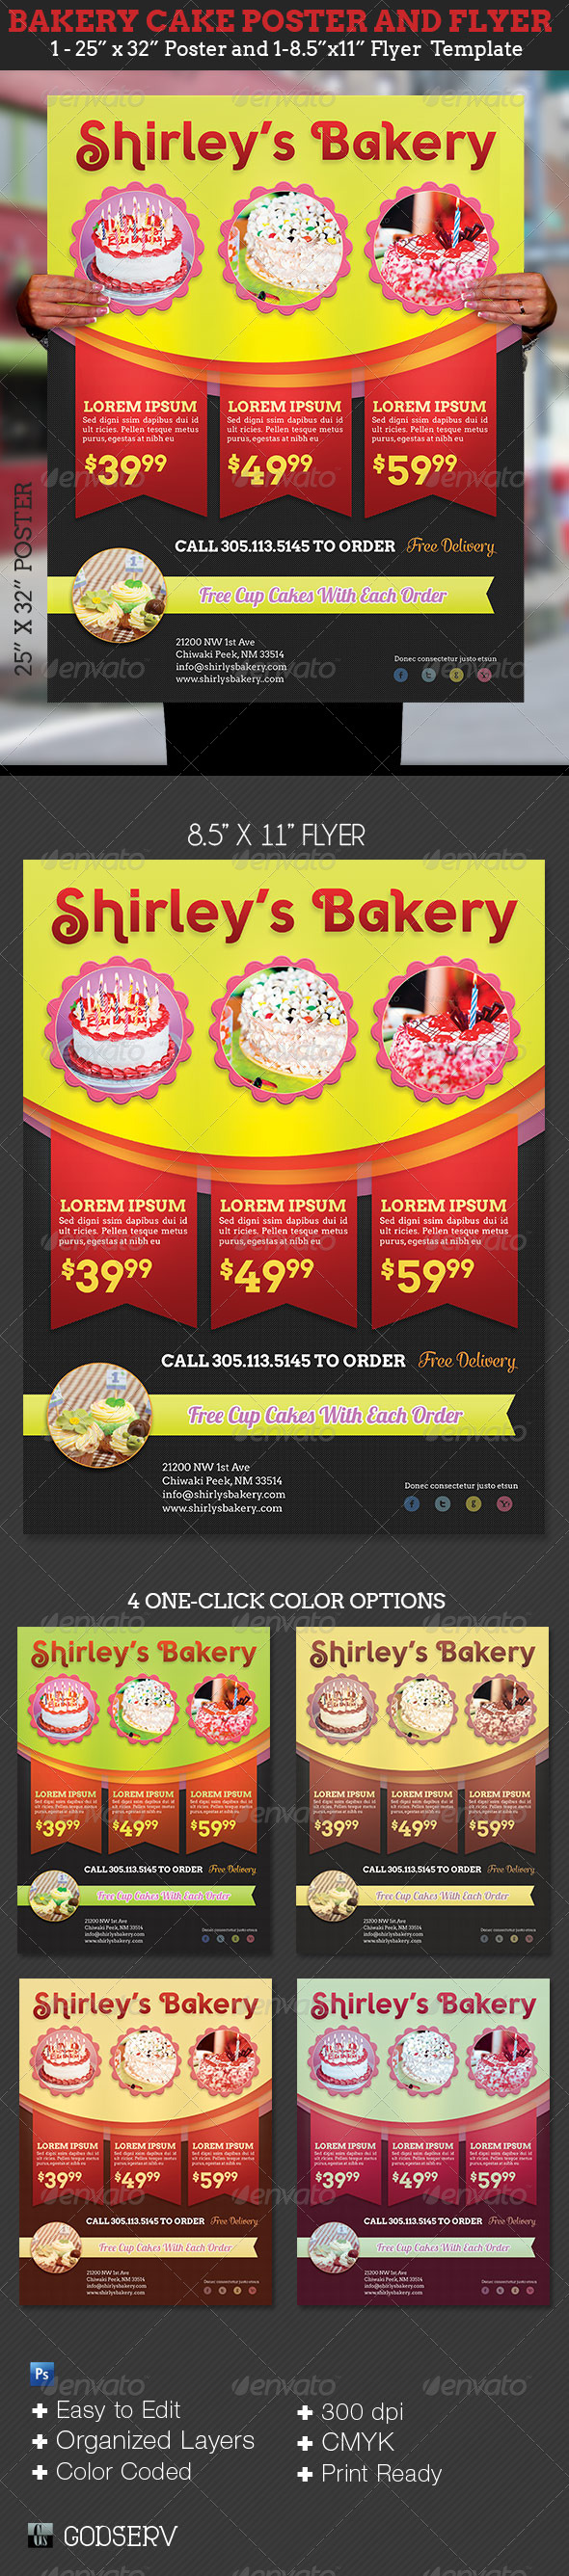 Bakery Cake Flyer Poster Template - Commerce Flyers